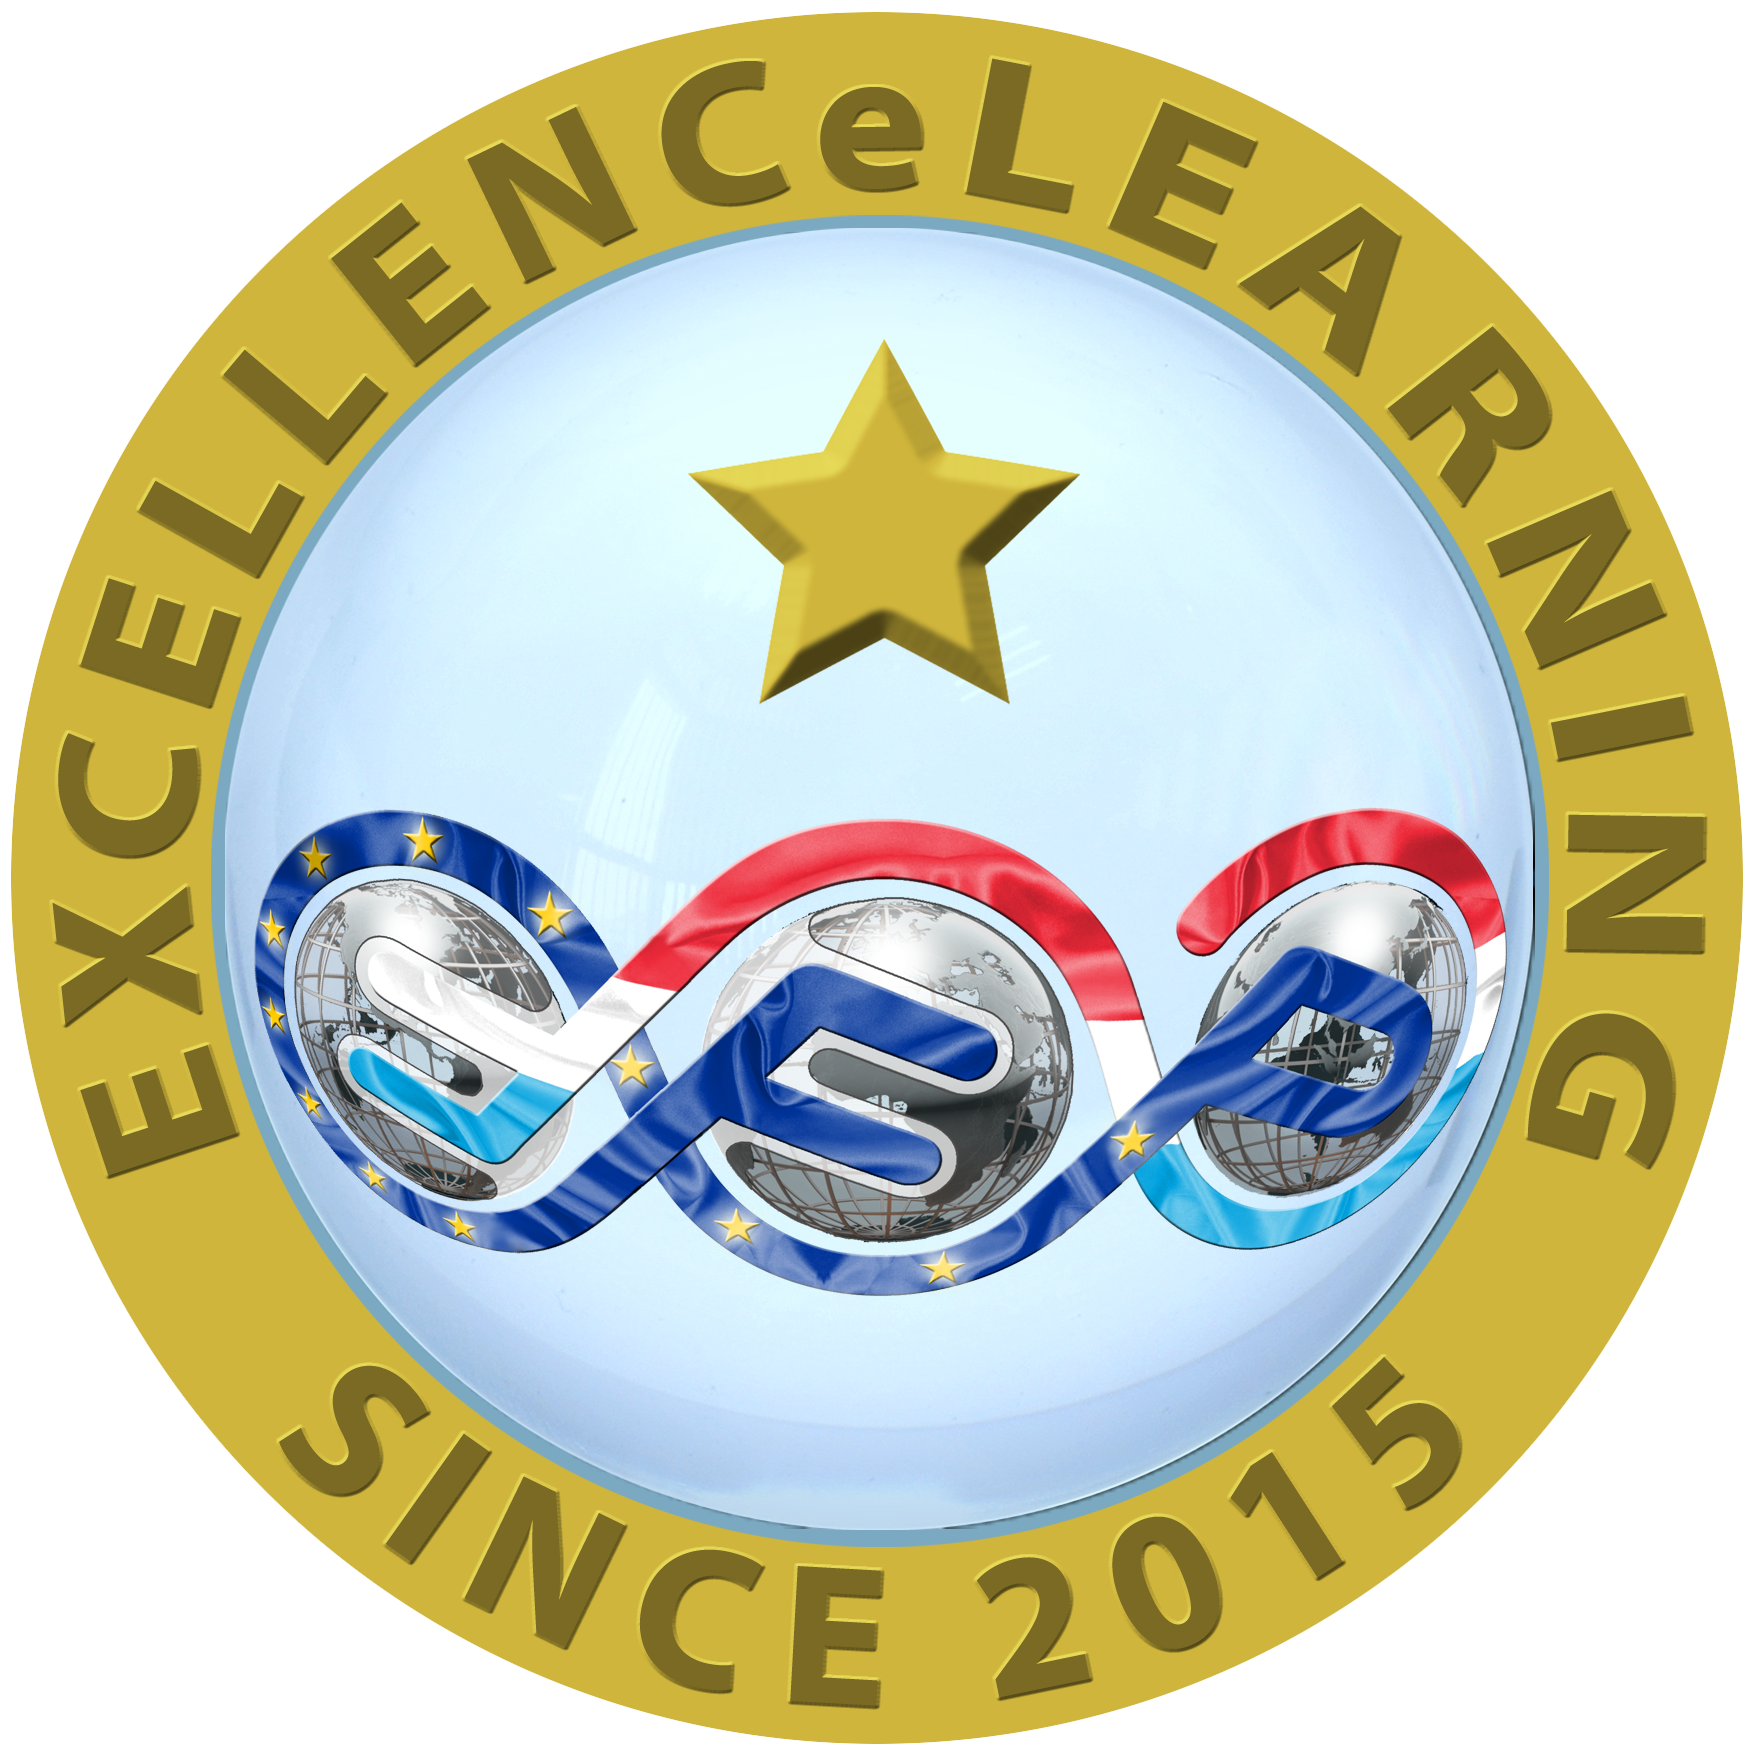 excellenceLearning label